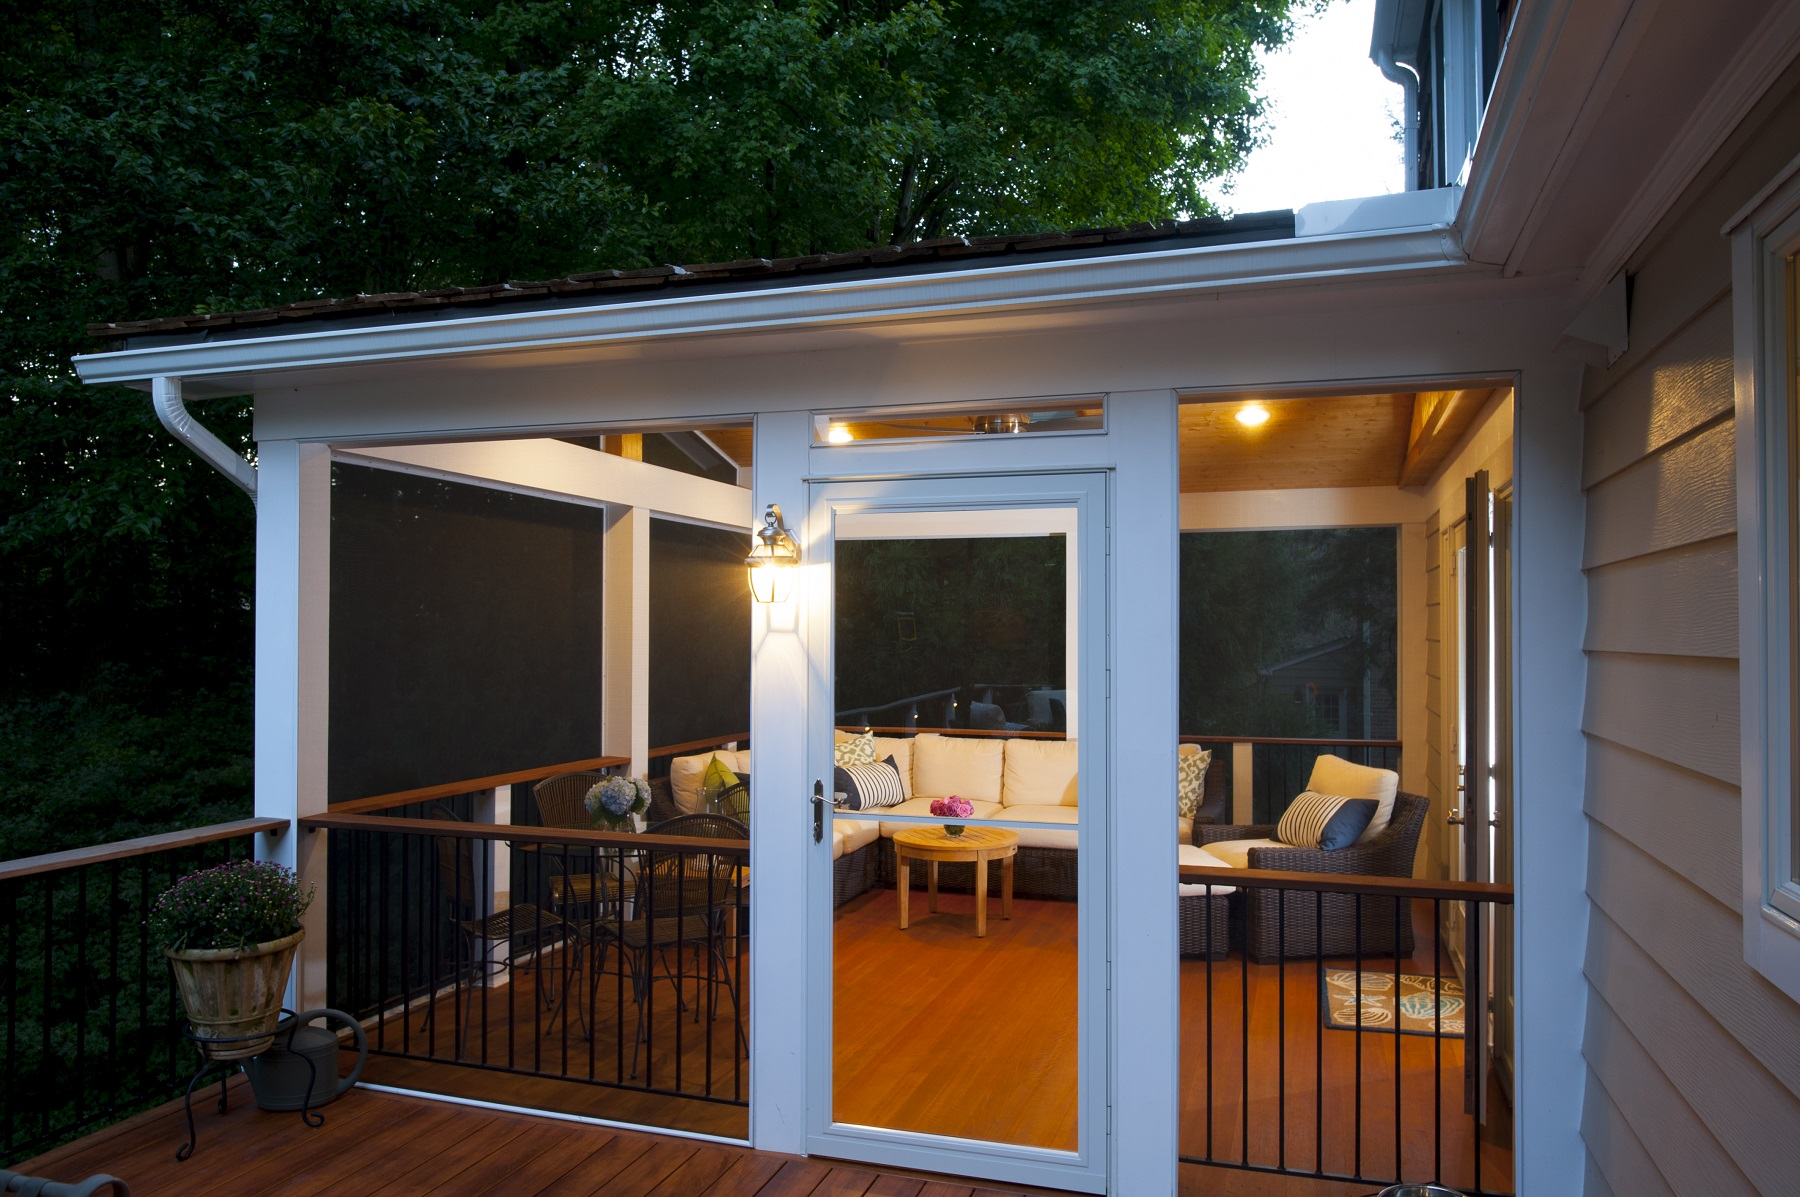 for enclosing an existing outdoor space